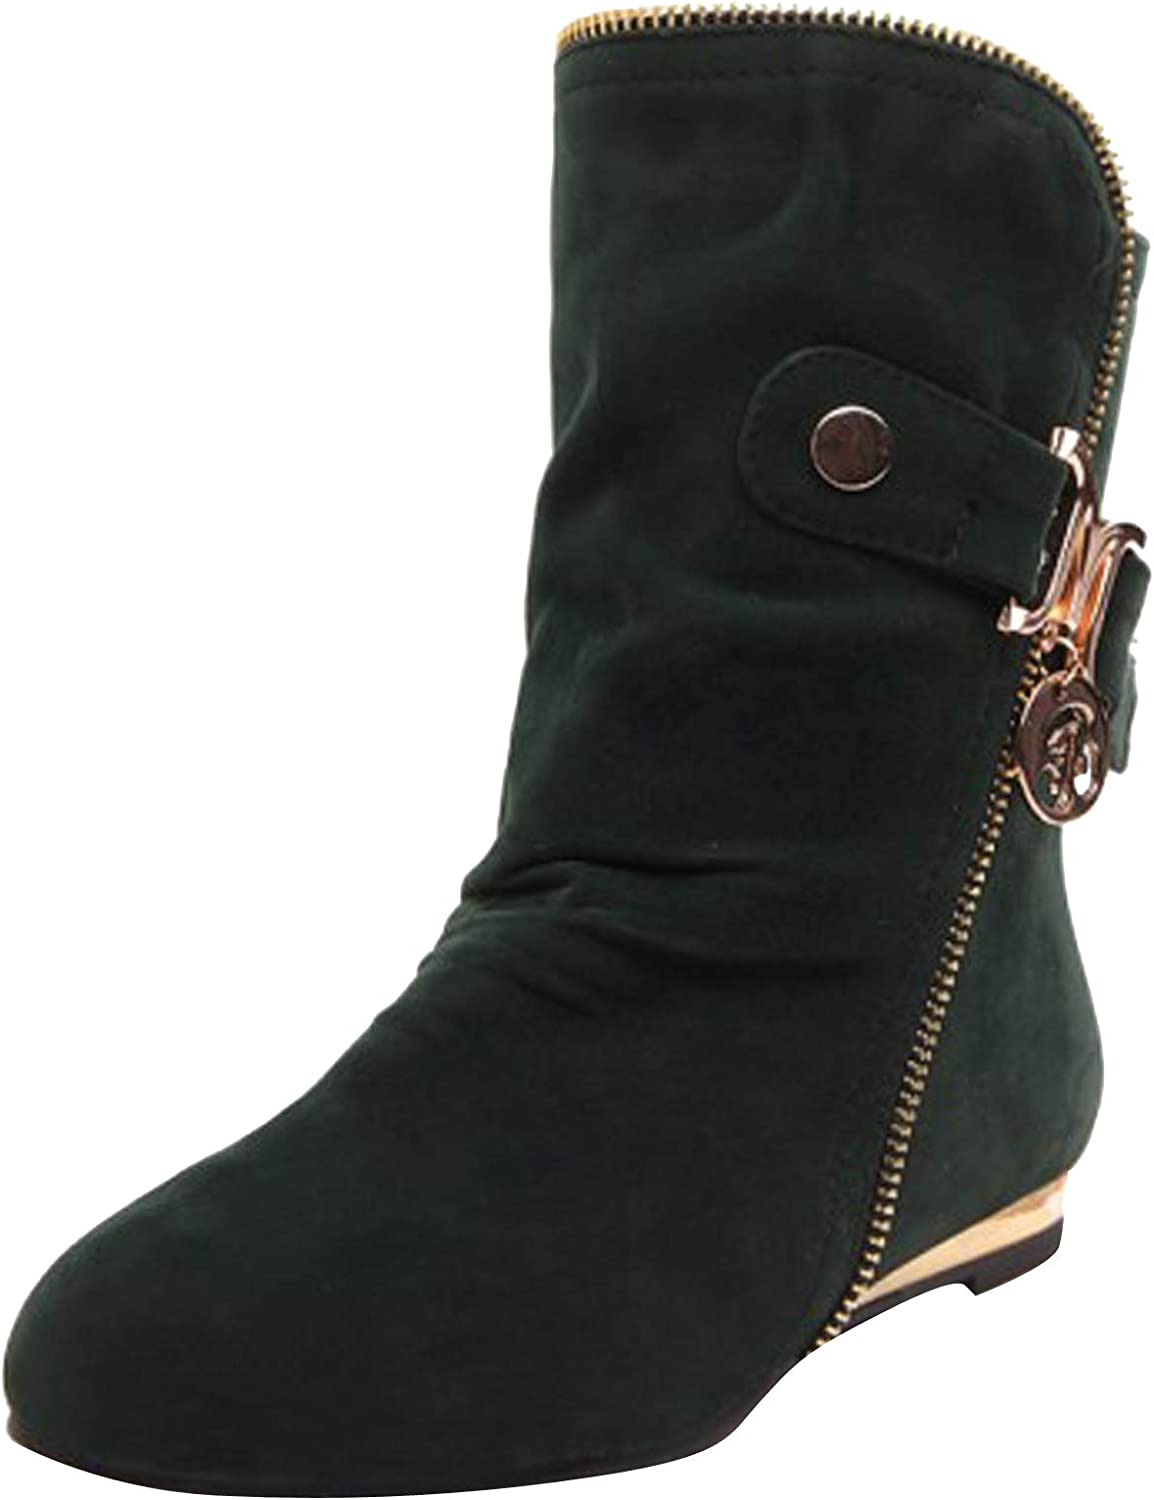 Ranking TOP1 Show Shine Women's Short Flats Recommendation Boots